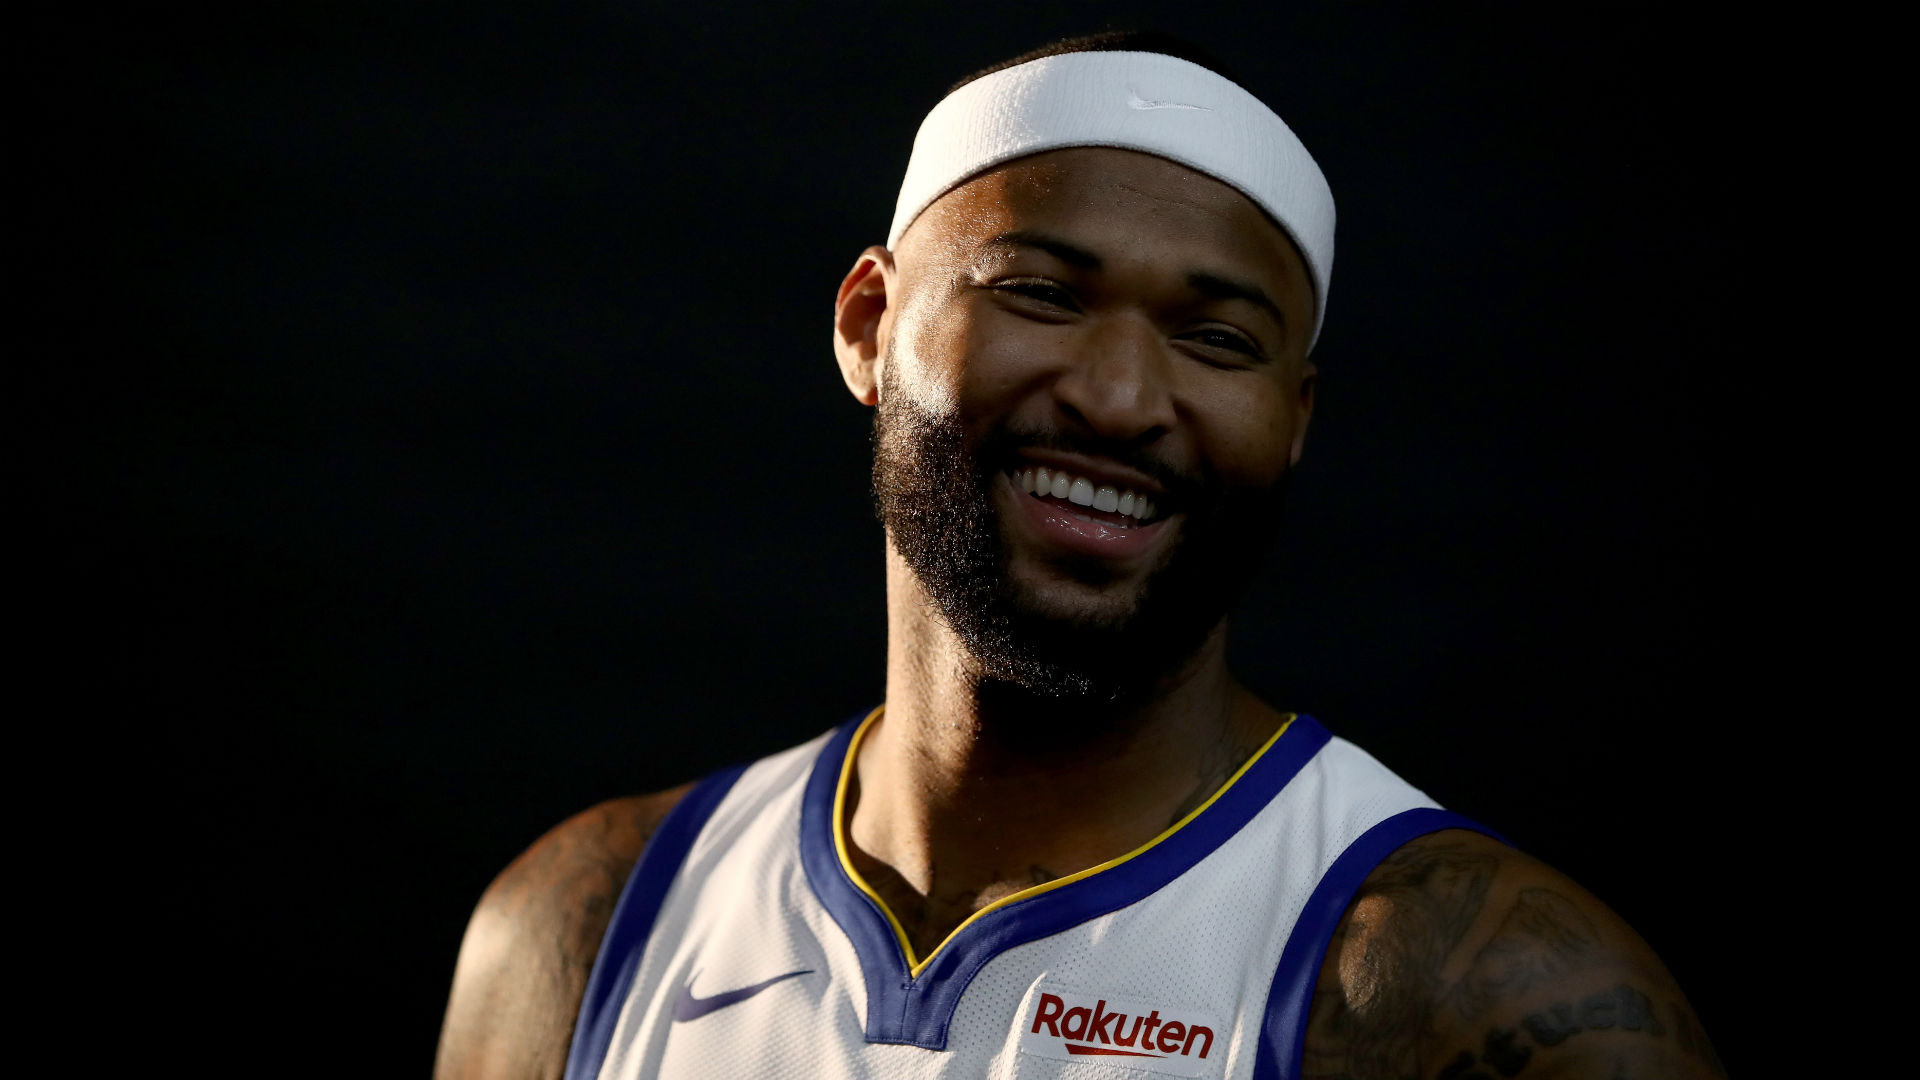 Warriors lift DeMarcus Cousins' minutes limit, comeback 'entering different phase'